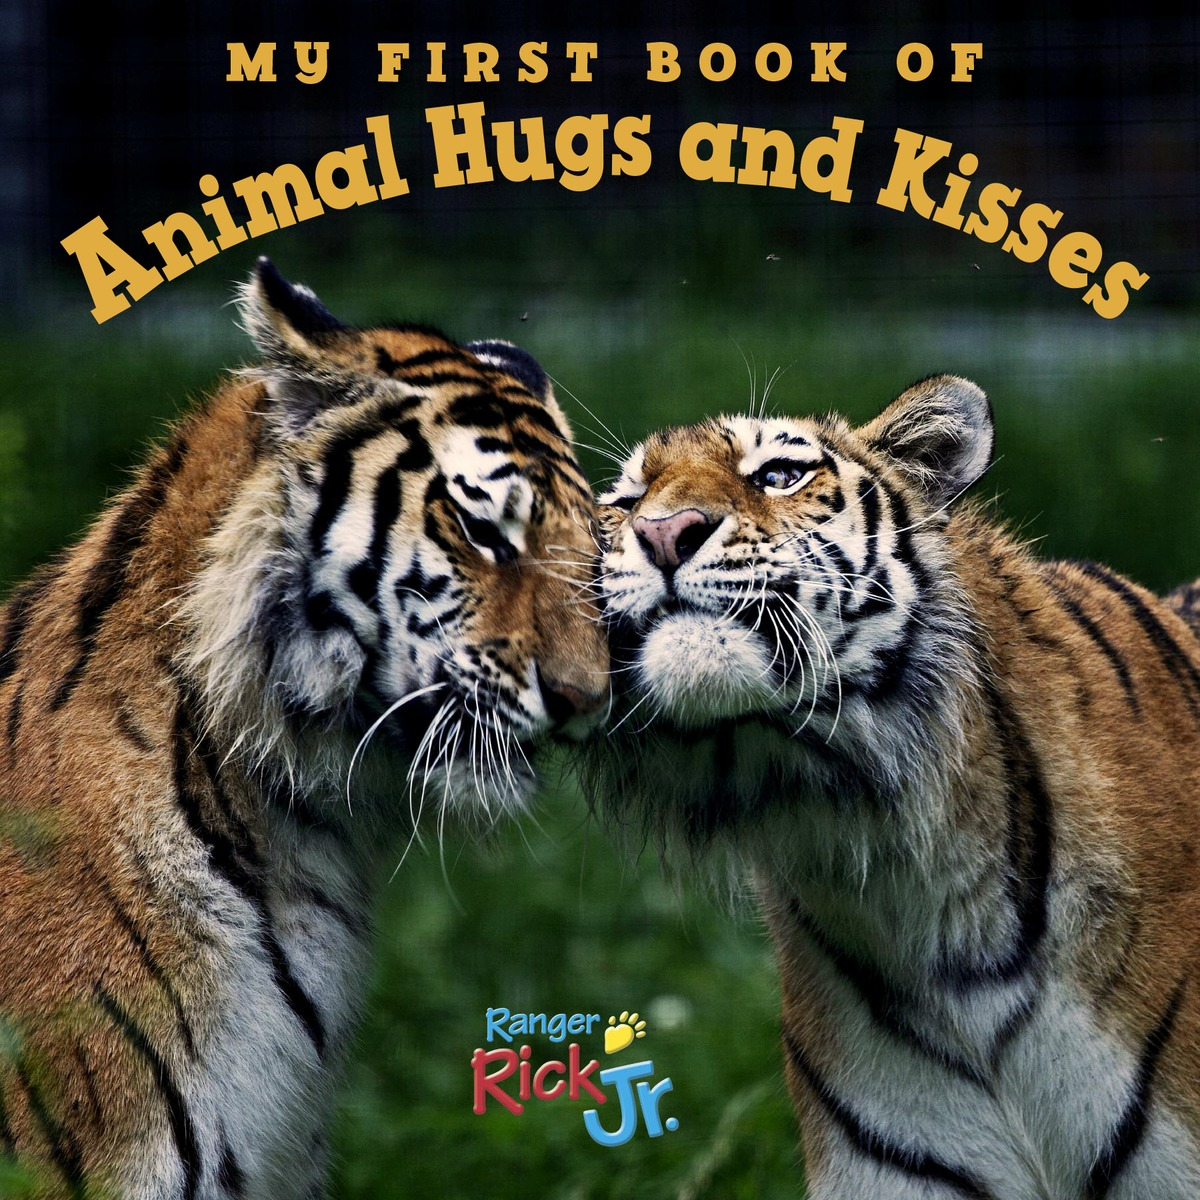 My First Book of Animal Hugs and Kisses (National Wildlife Federation) my first book of vehicles